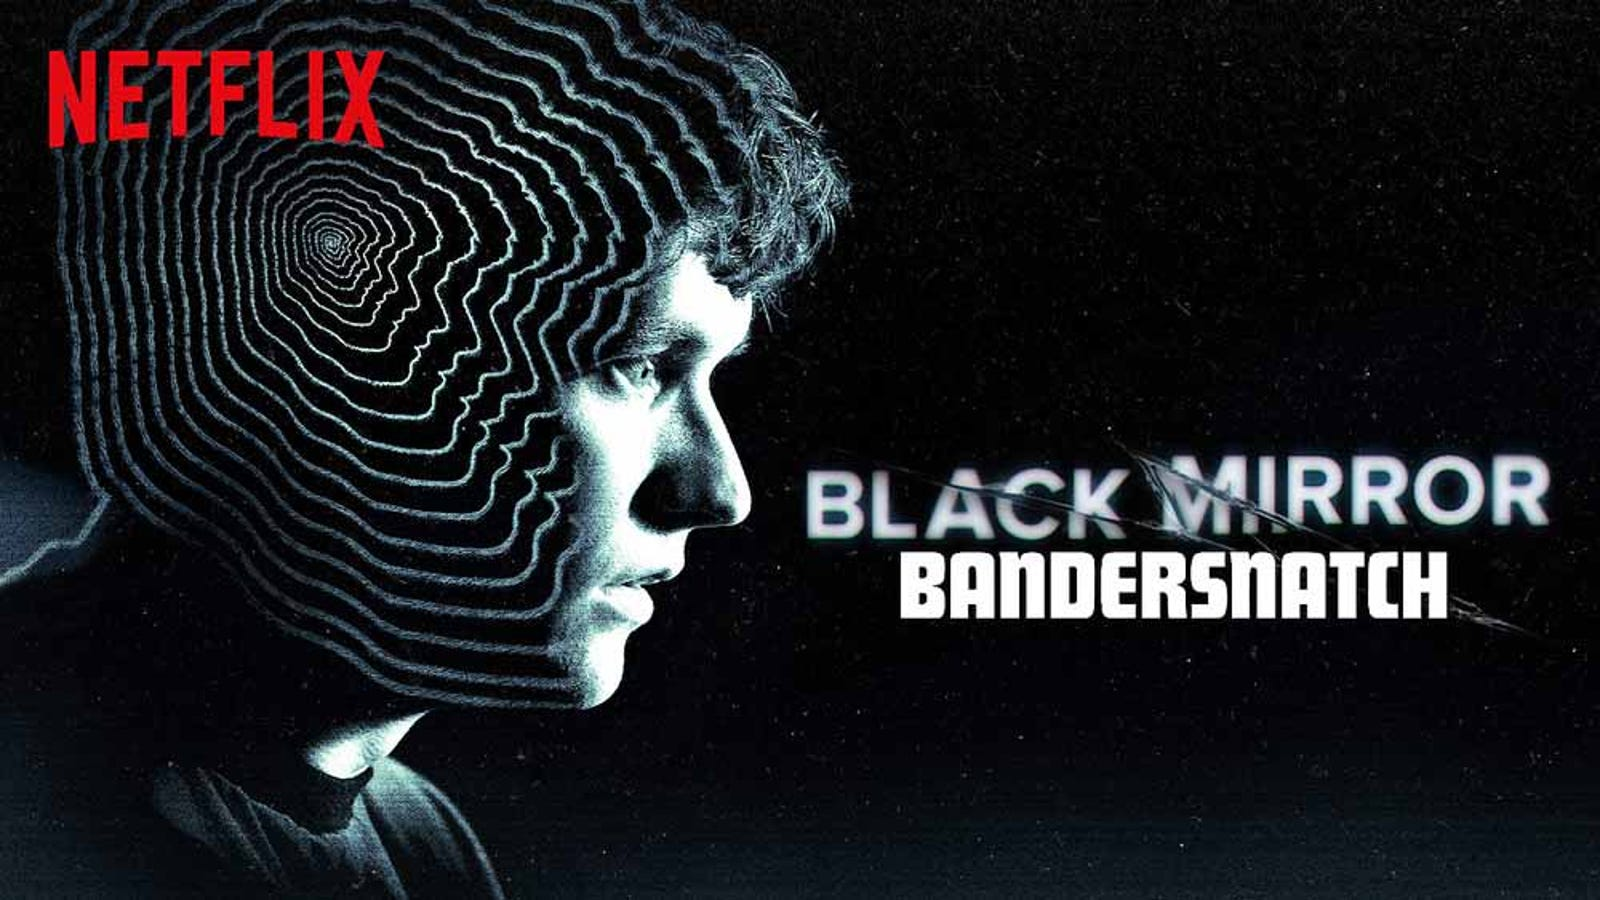 QnA VBage That New Black Mirror Interactive Film From Netflix Doesn't Work on Apple TV